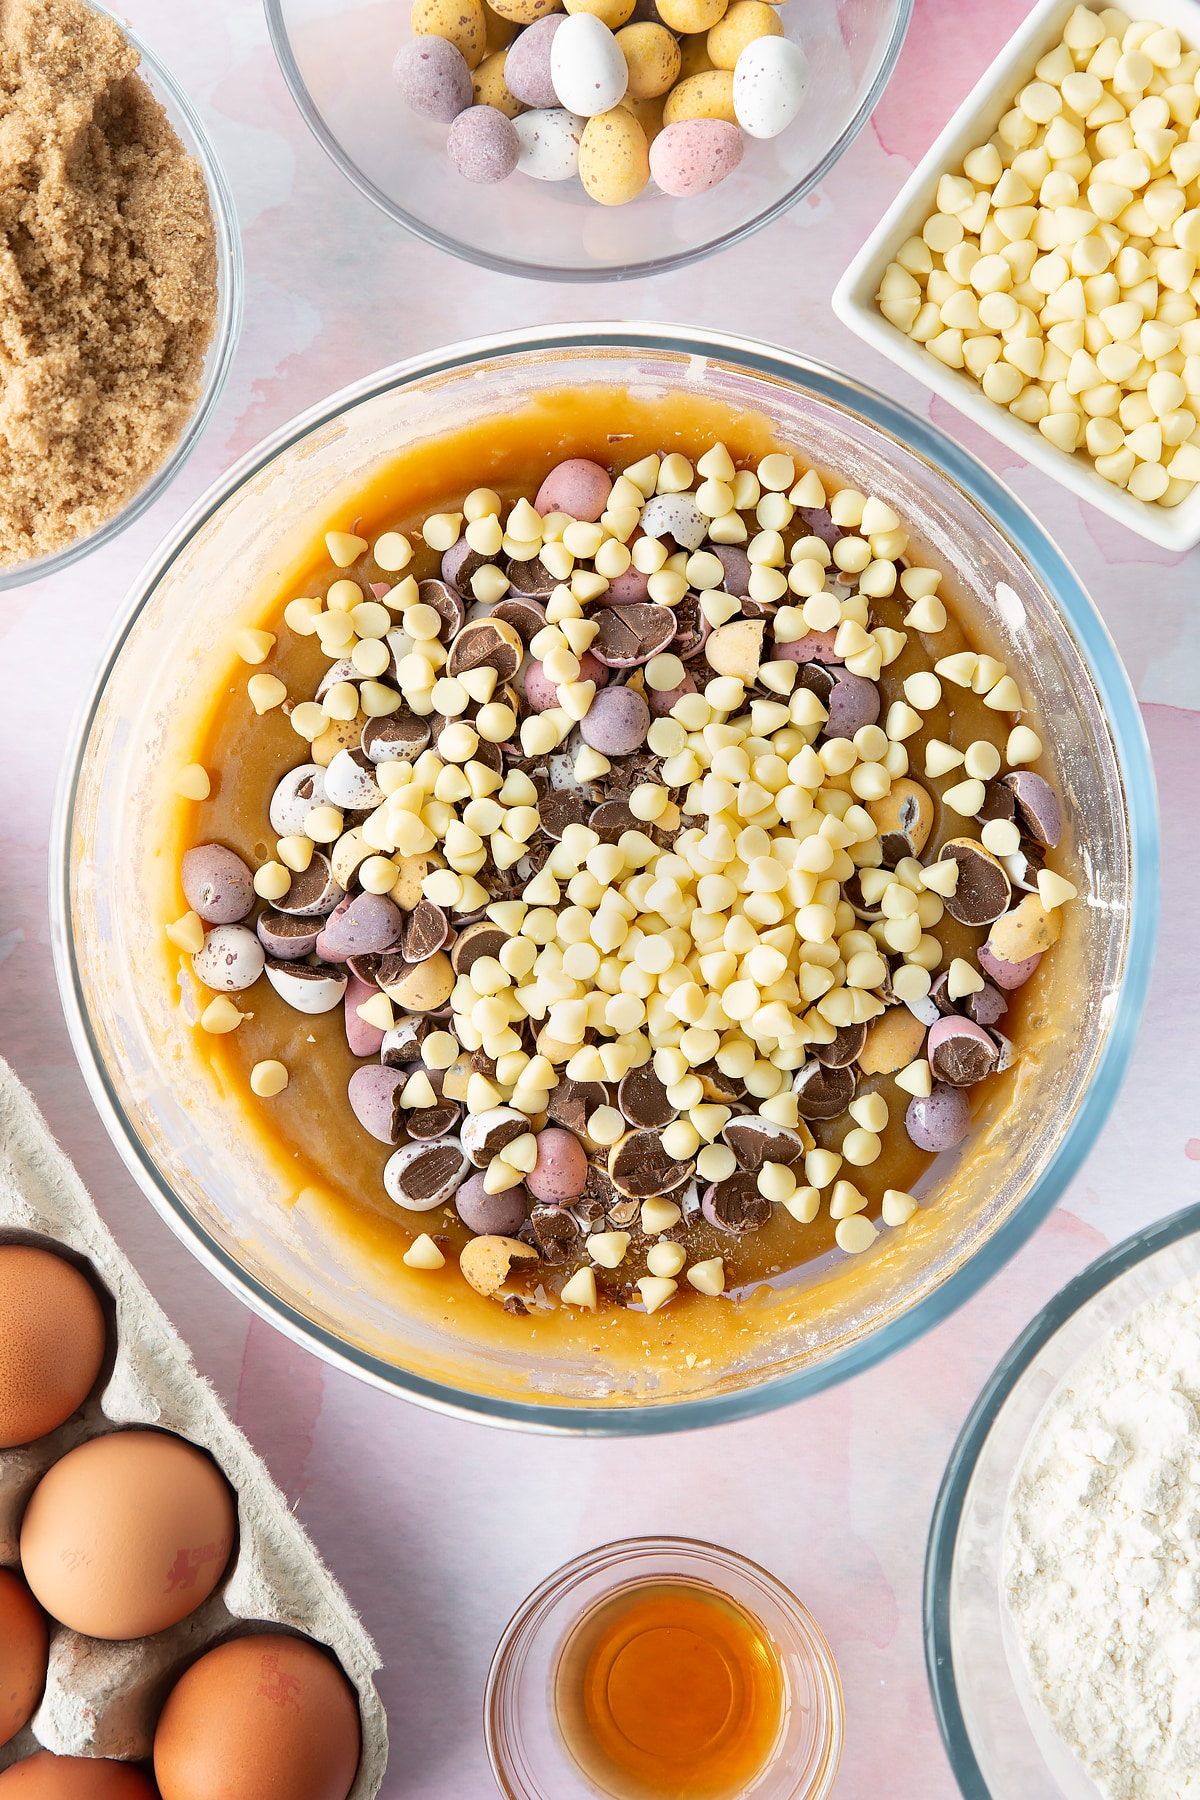 Basic blondie batter in a bowl with white choc chips and mini eggs on top. Ingredients to make Mini Egg blondies surround the bowl.